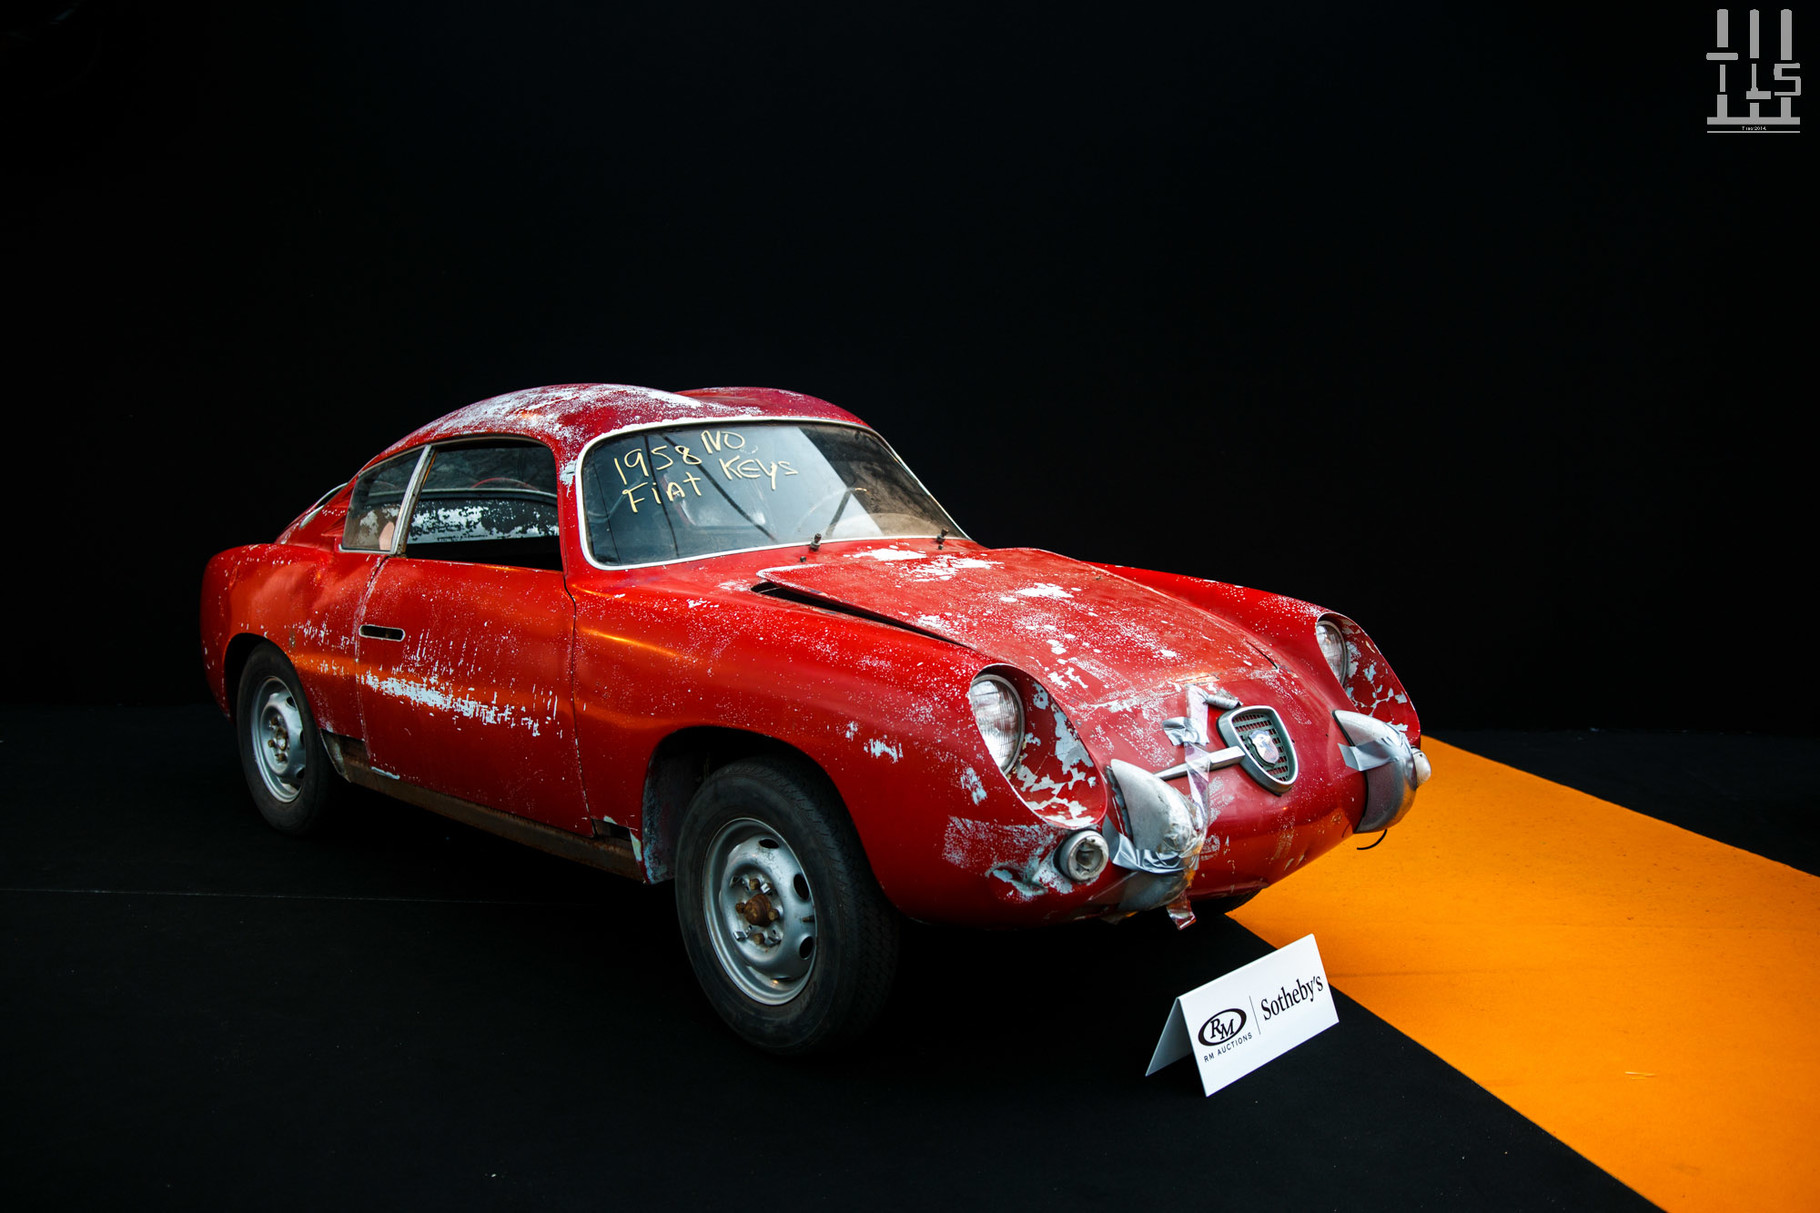 Fiat-Abarth 750 GT 'Double Bubble' par Zagato, vendue à 30 800 euros.